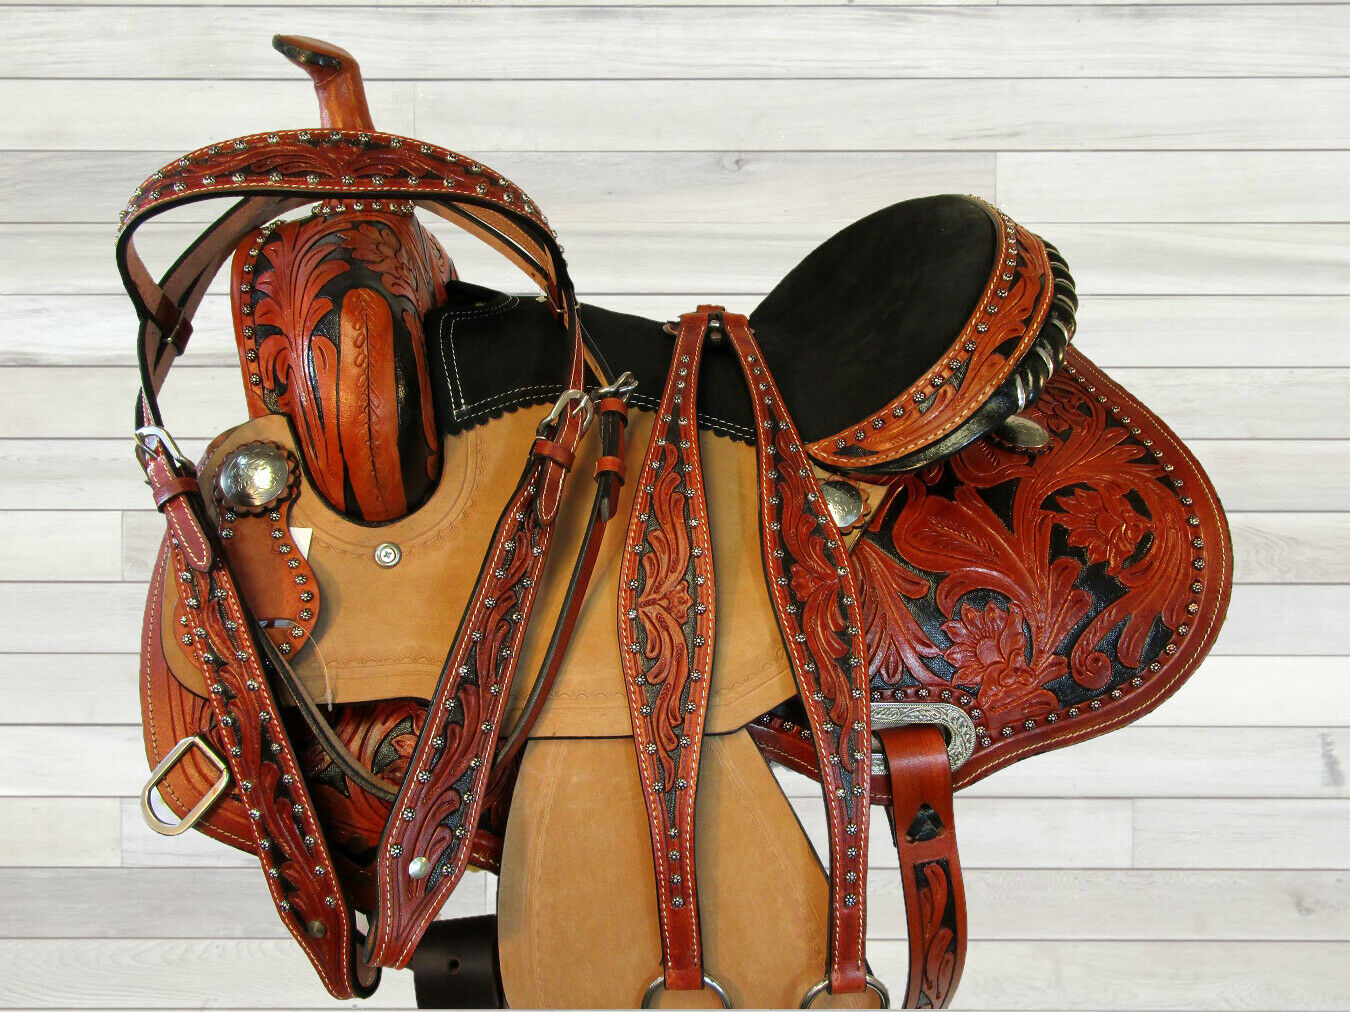 15 16 EQUINE HORSE SHOW WESTERNSÄTTEL  FUR PFERDE BARREL WESTERN TRAIL SADDLE  to provide you with a pleasant online shopping